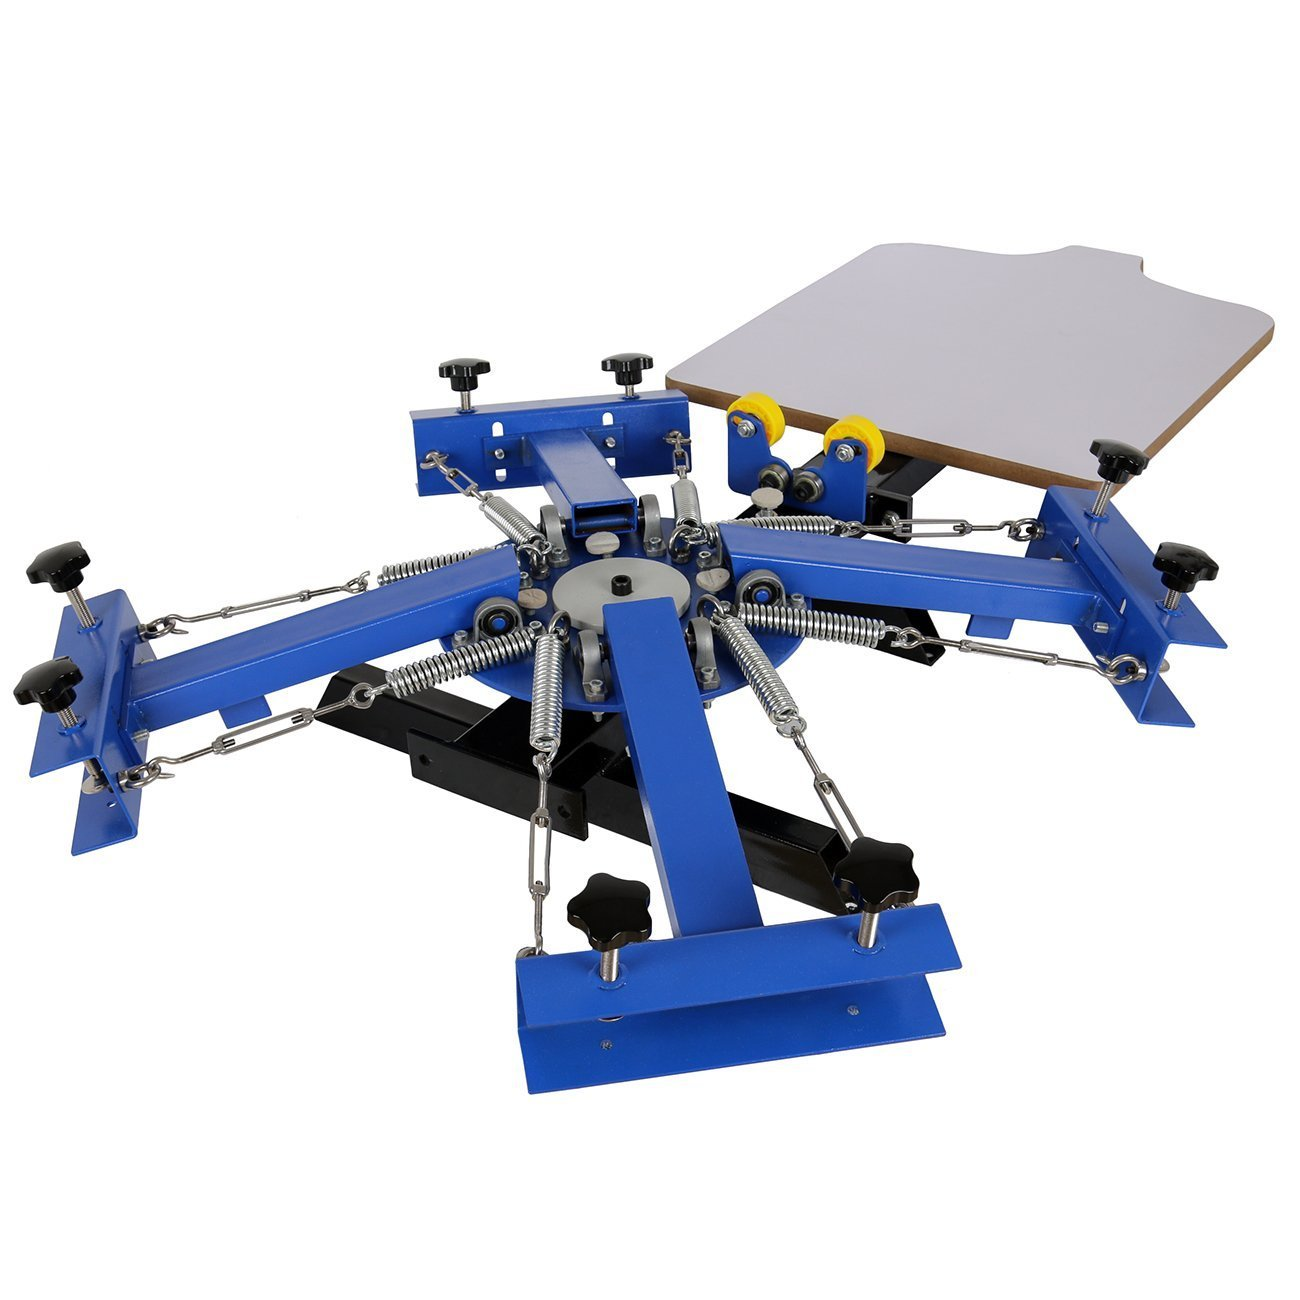 21.7x17.7 Silk Screen Printing Press Machine 4 Color 1 Station T-shirt Printing Machine(Silk Screen Printing Machine)